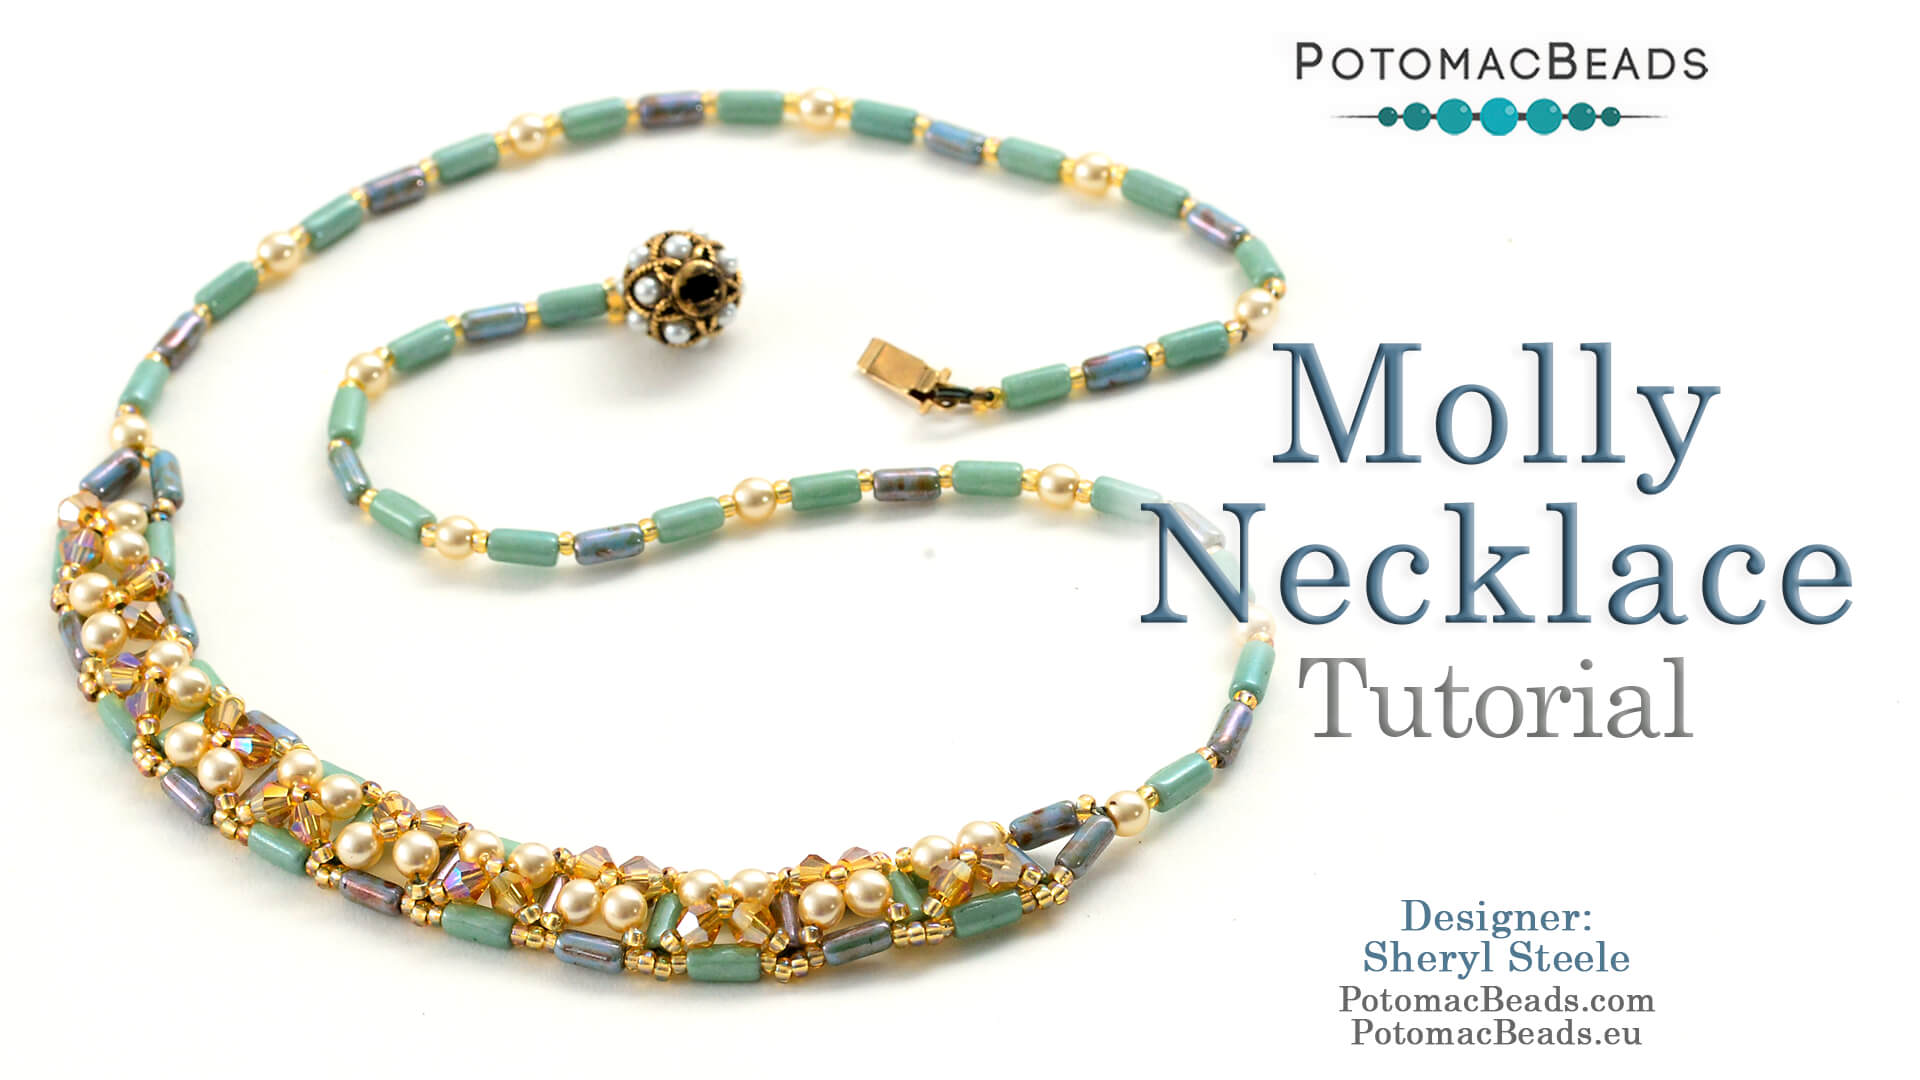 How to Bead / Videos Sorted by Beads / Pearl Videos (Czech & Freshwater) / Molly Necklace Tutorial